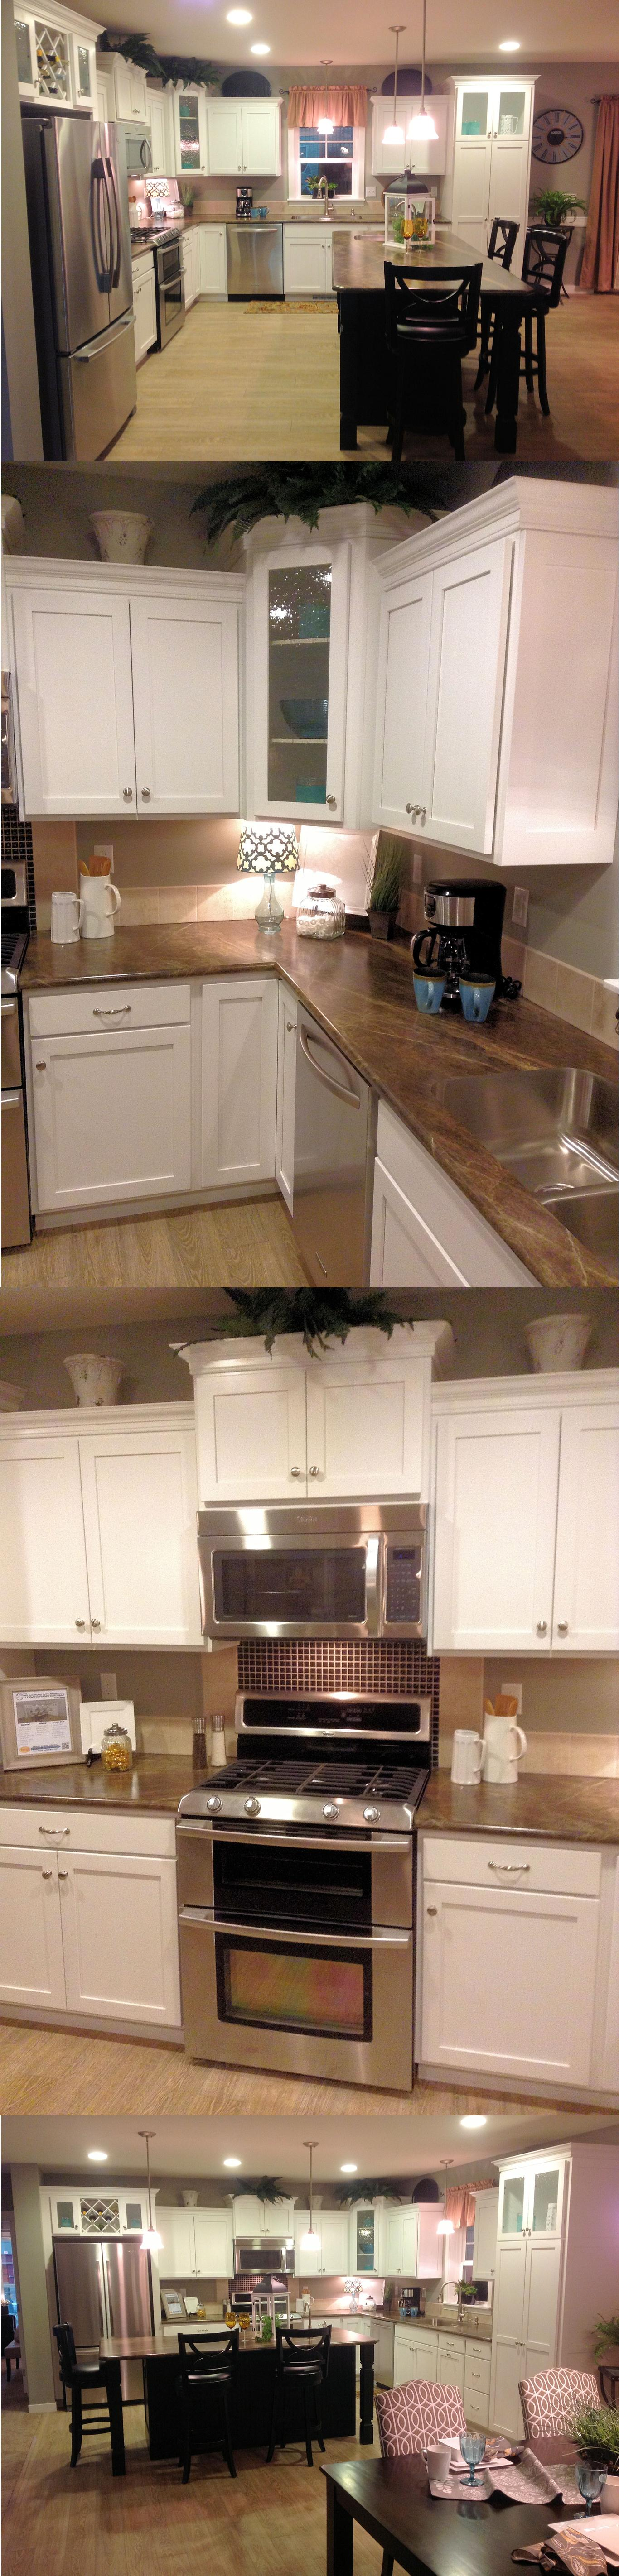 Home Legacy Crafted Cabinets Custom Kitchens Home Kitchen Remodel